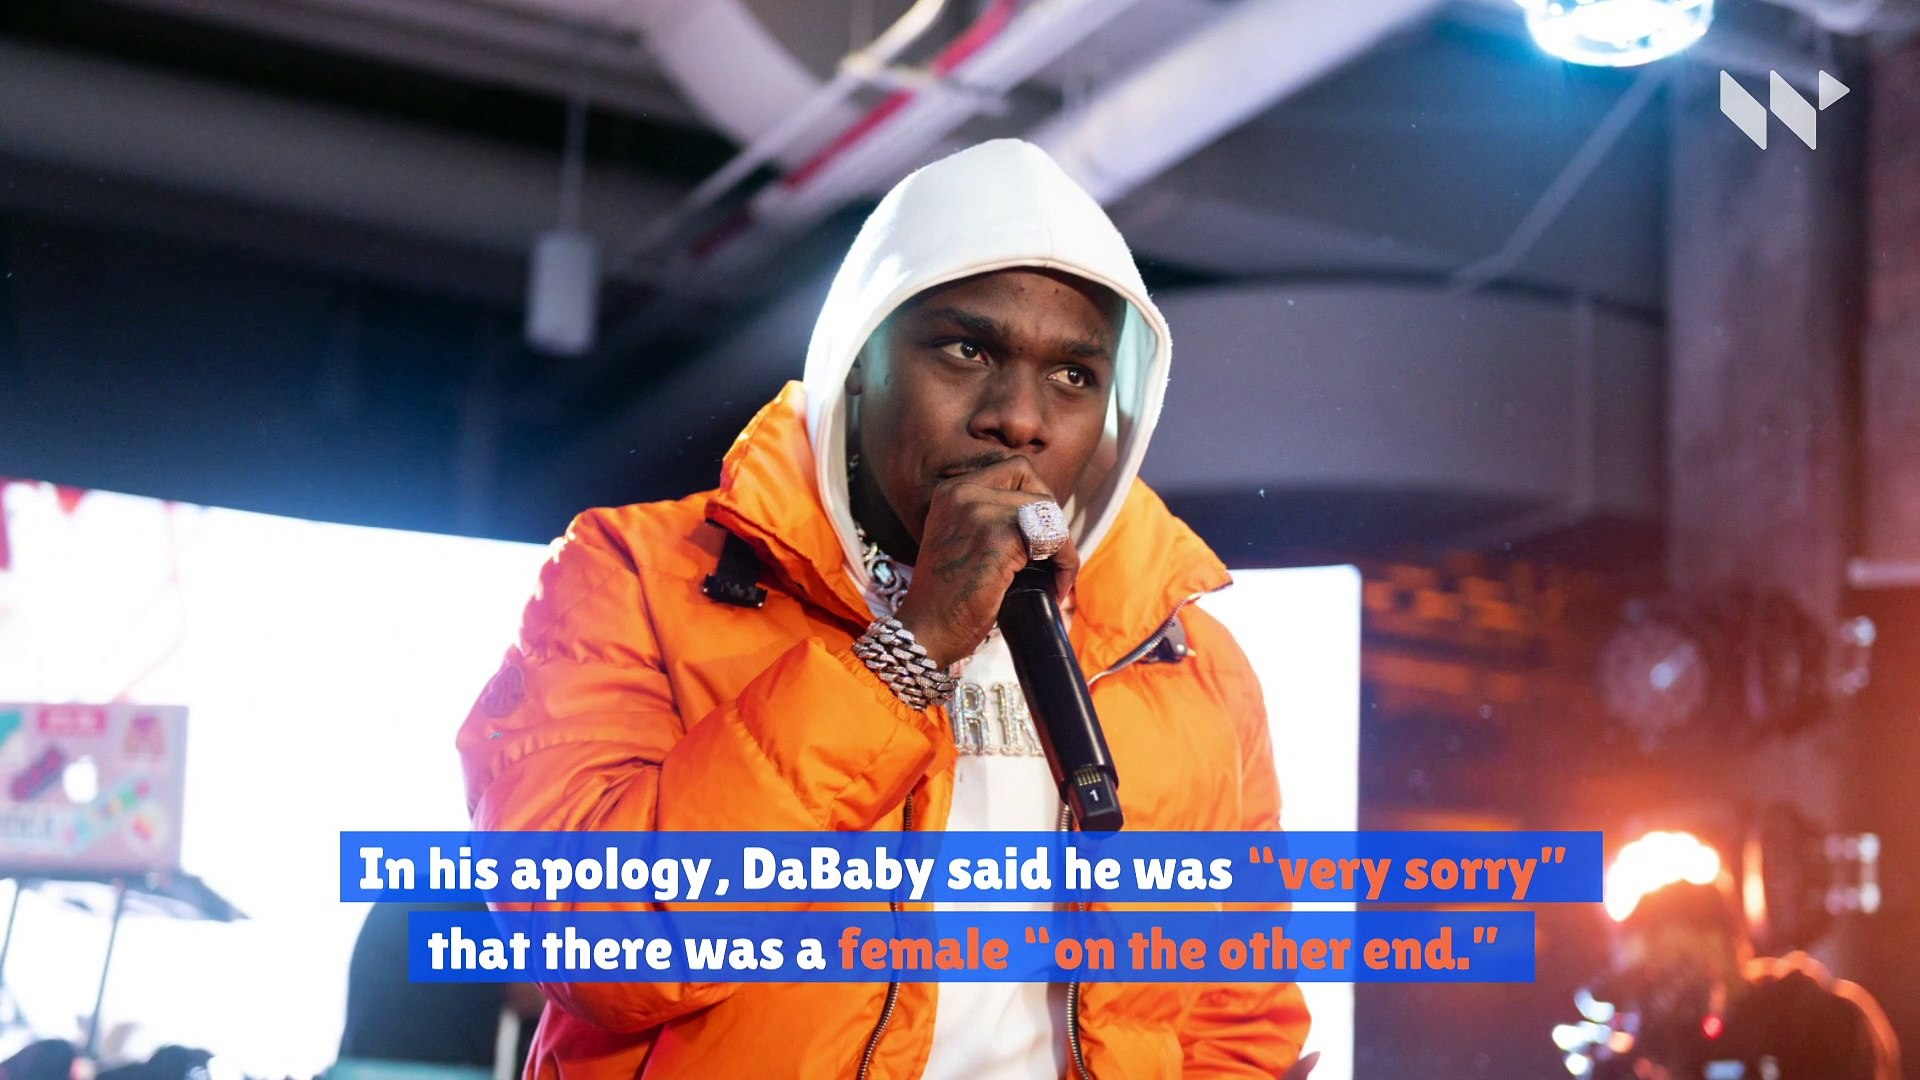 DaBaby Issues Apology for Assaulting Female Fan